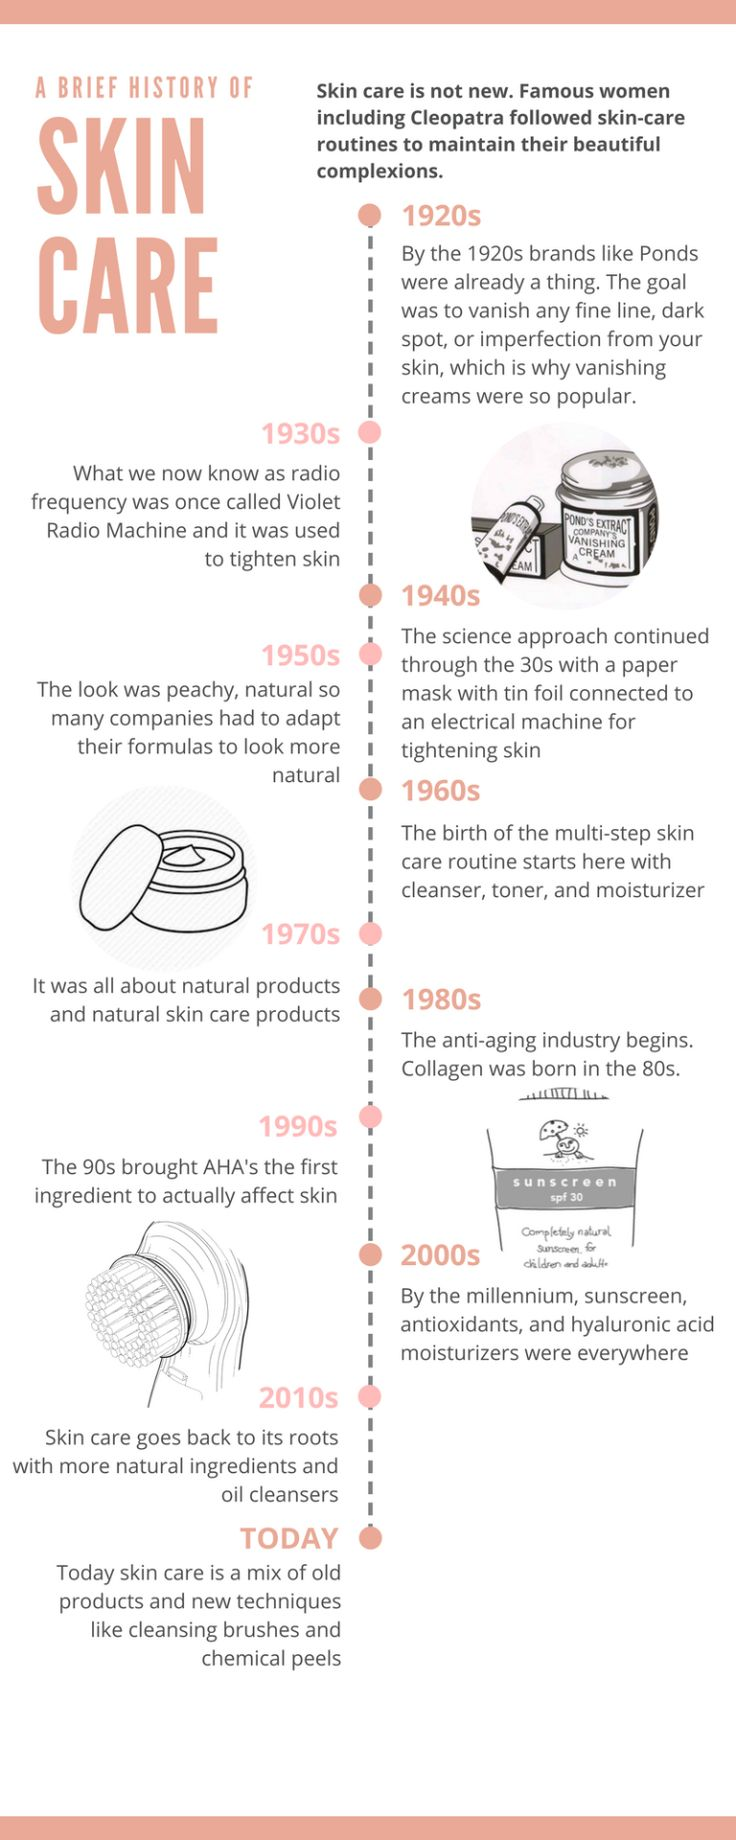 Skin care products are nothing new. In fact, some of the beauty secrets we share today go back to Cleopatra! I wanted to share with you guys this skin-care timeline going back to the 1920s. Did you know Ponds creams date back to the 20s? Go back over...